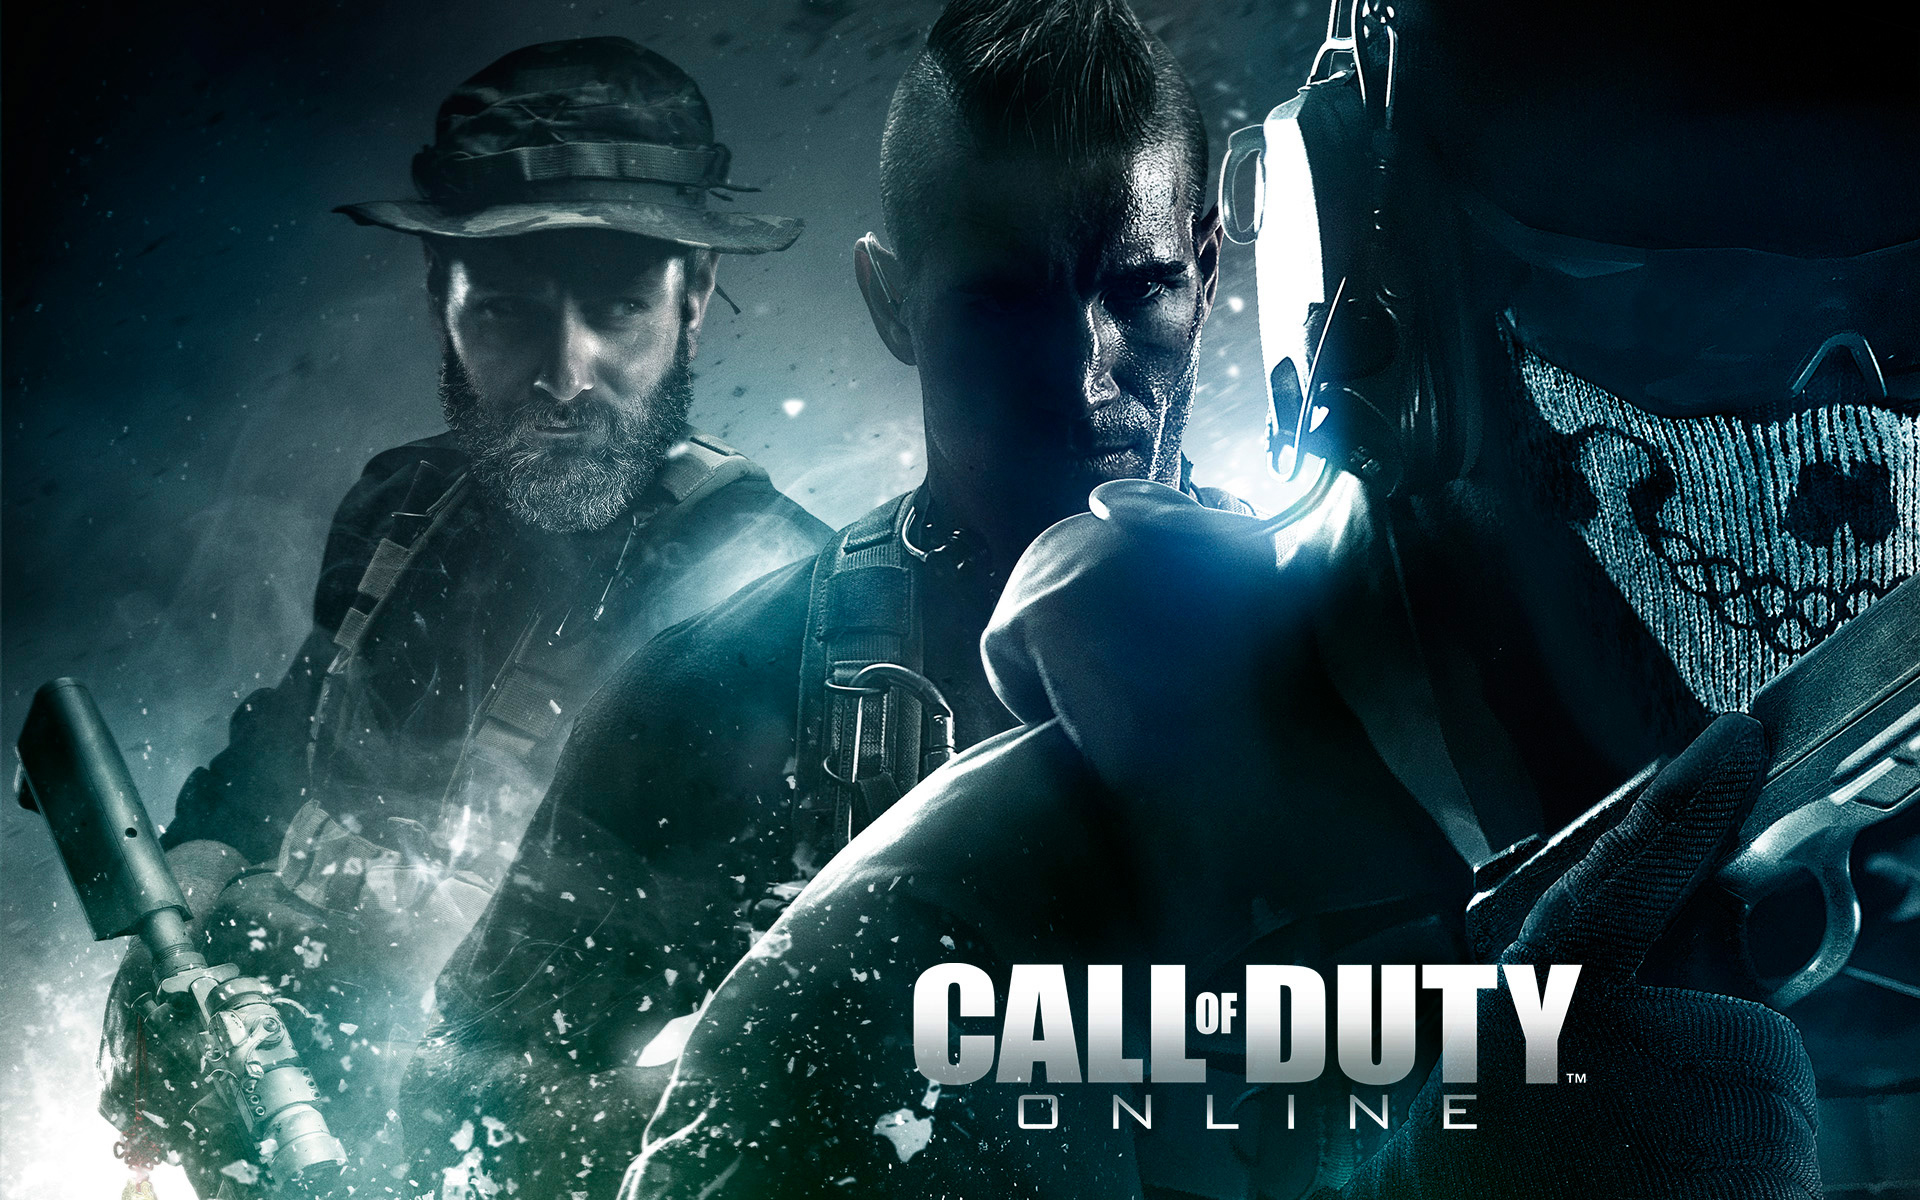 HD Wallpapers Call of Duty Online Game